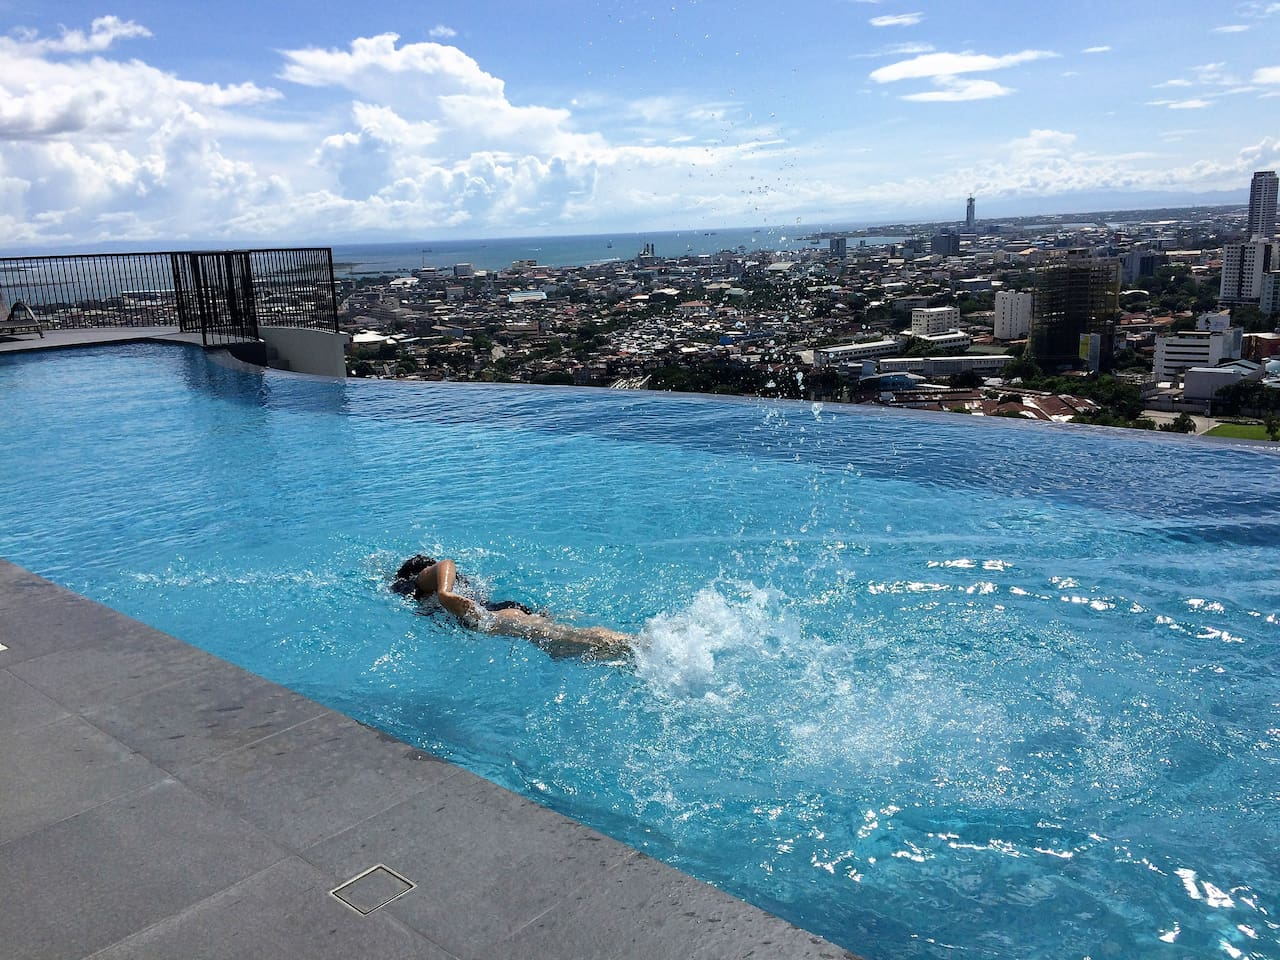 Relaxing and refreshing scenic view of the city, sun, sea and the hills.s